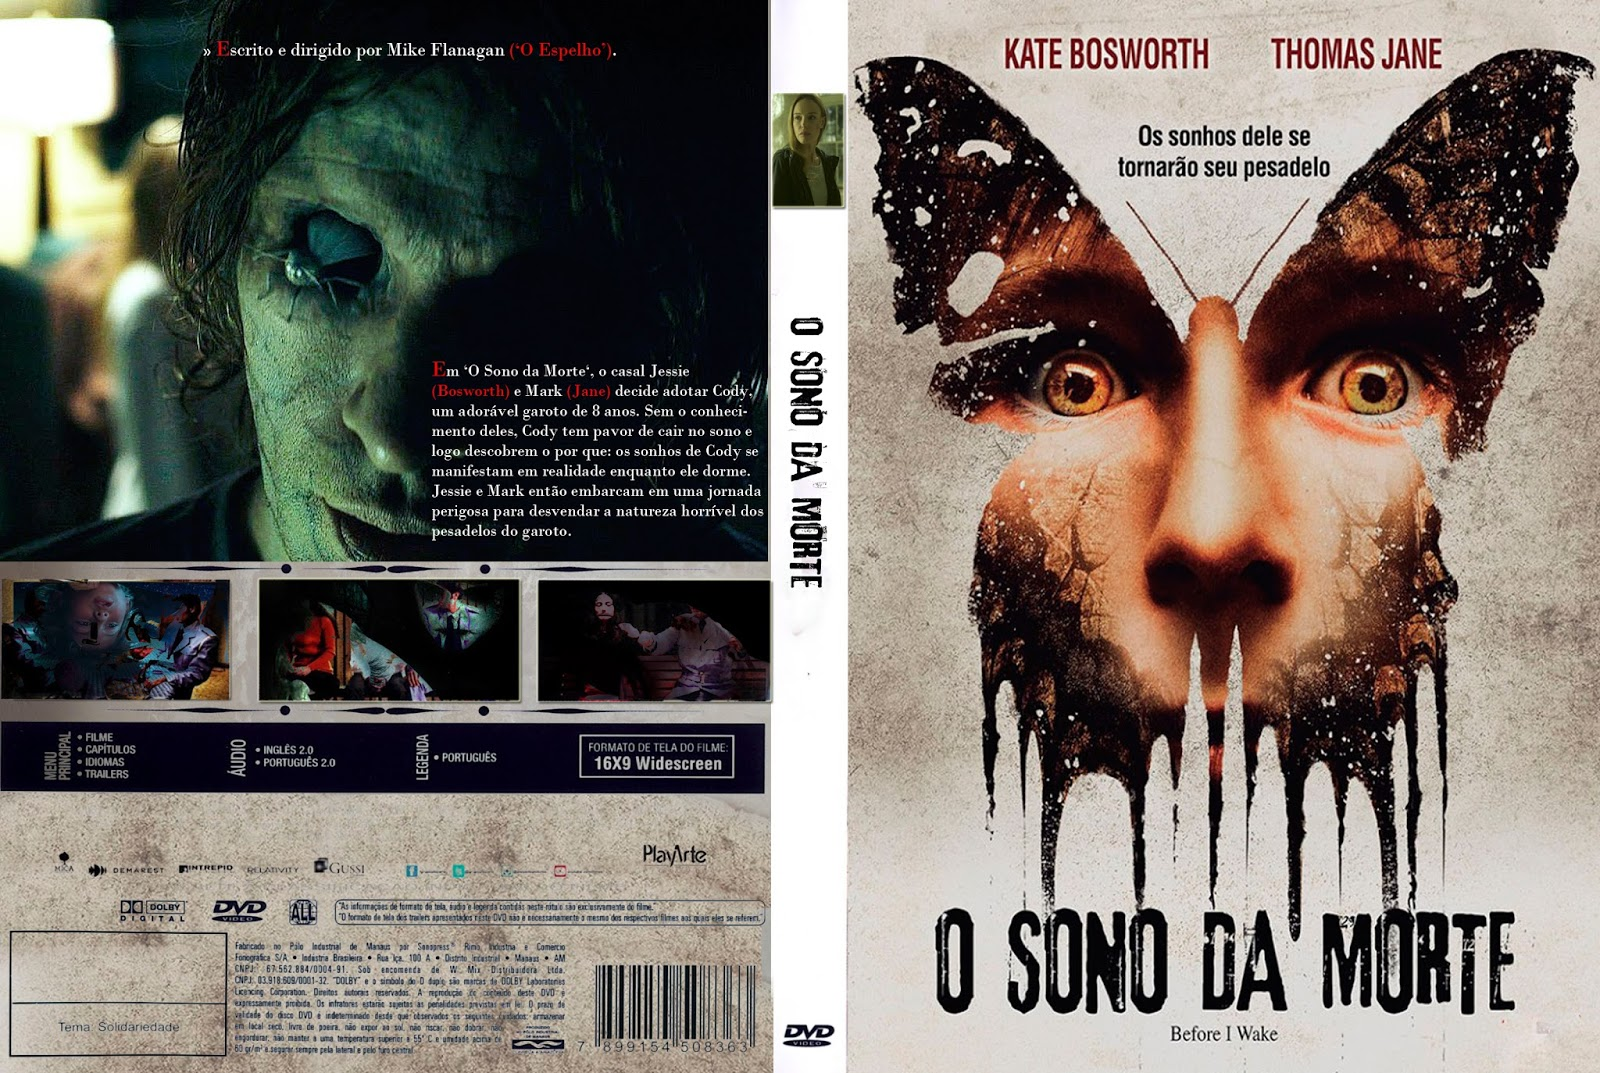 Download O Sono da Morte DVD-R O 2BSono 2Bda 2BMorte